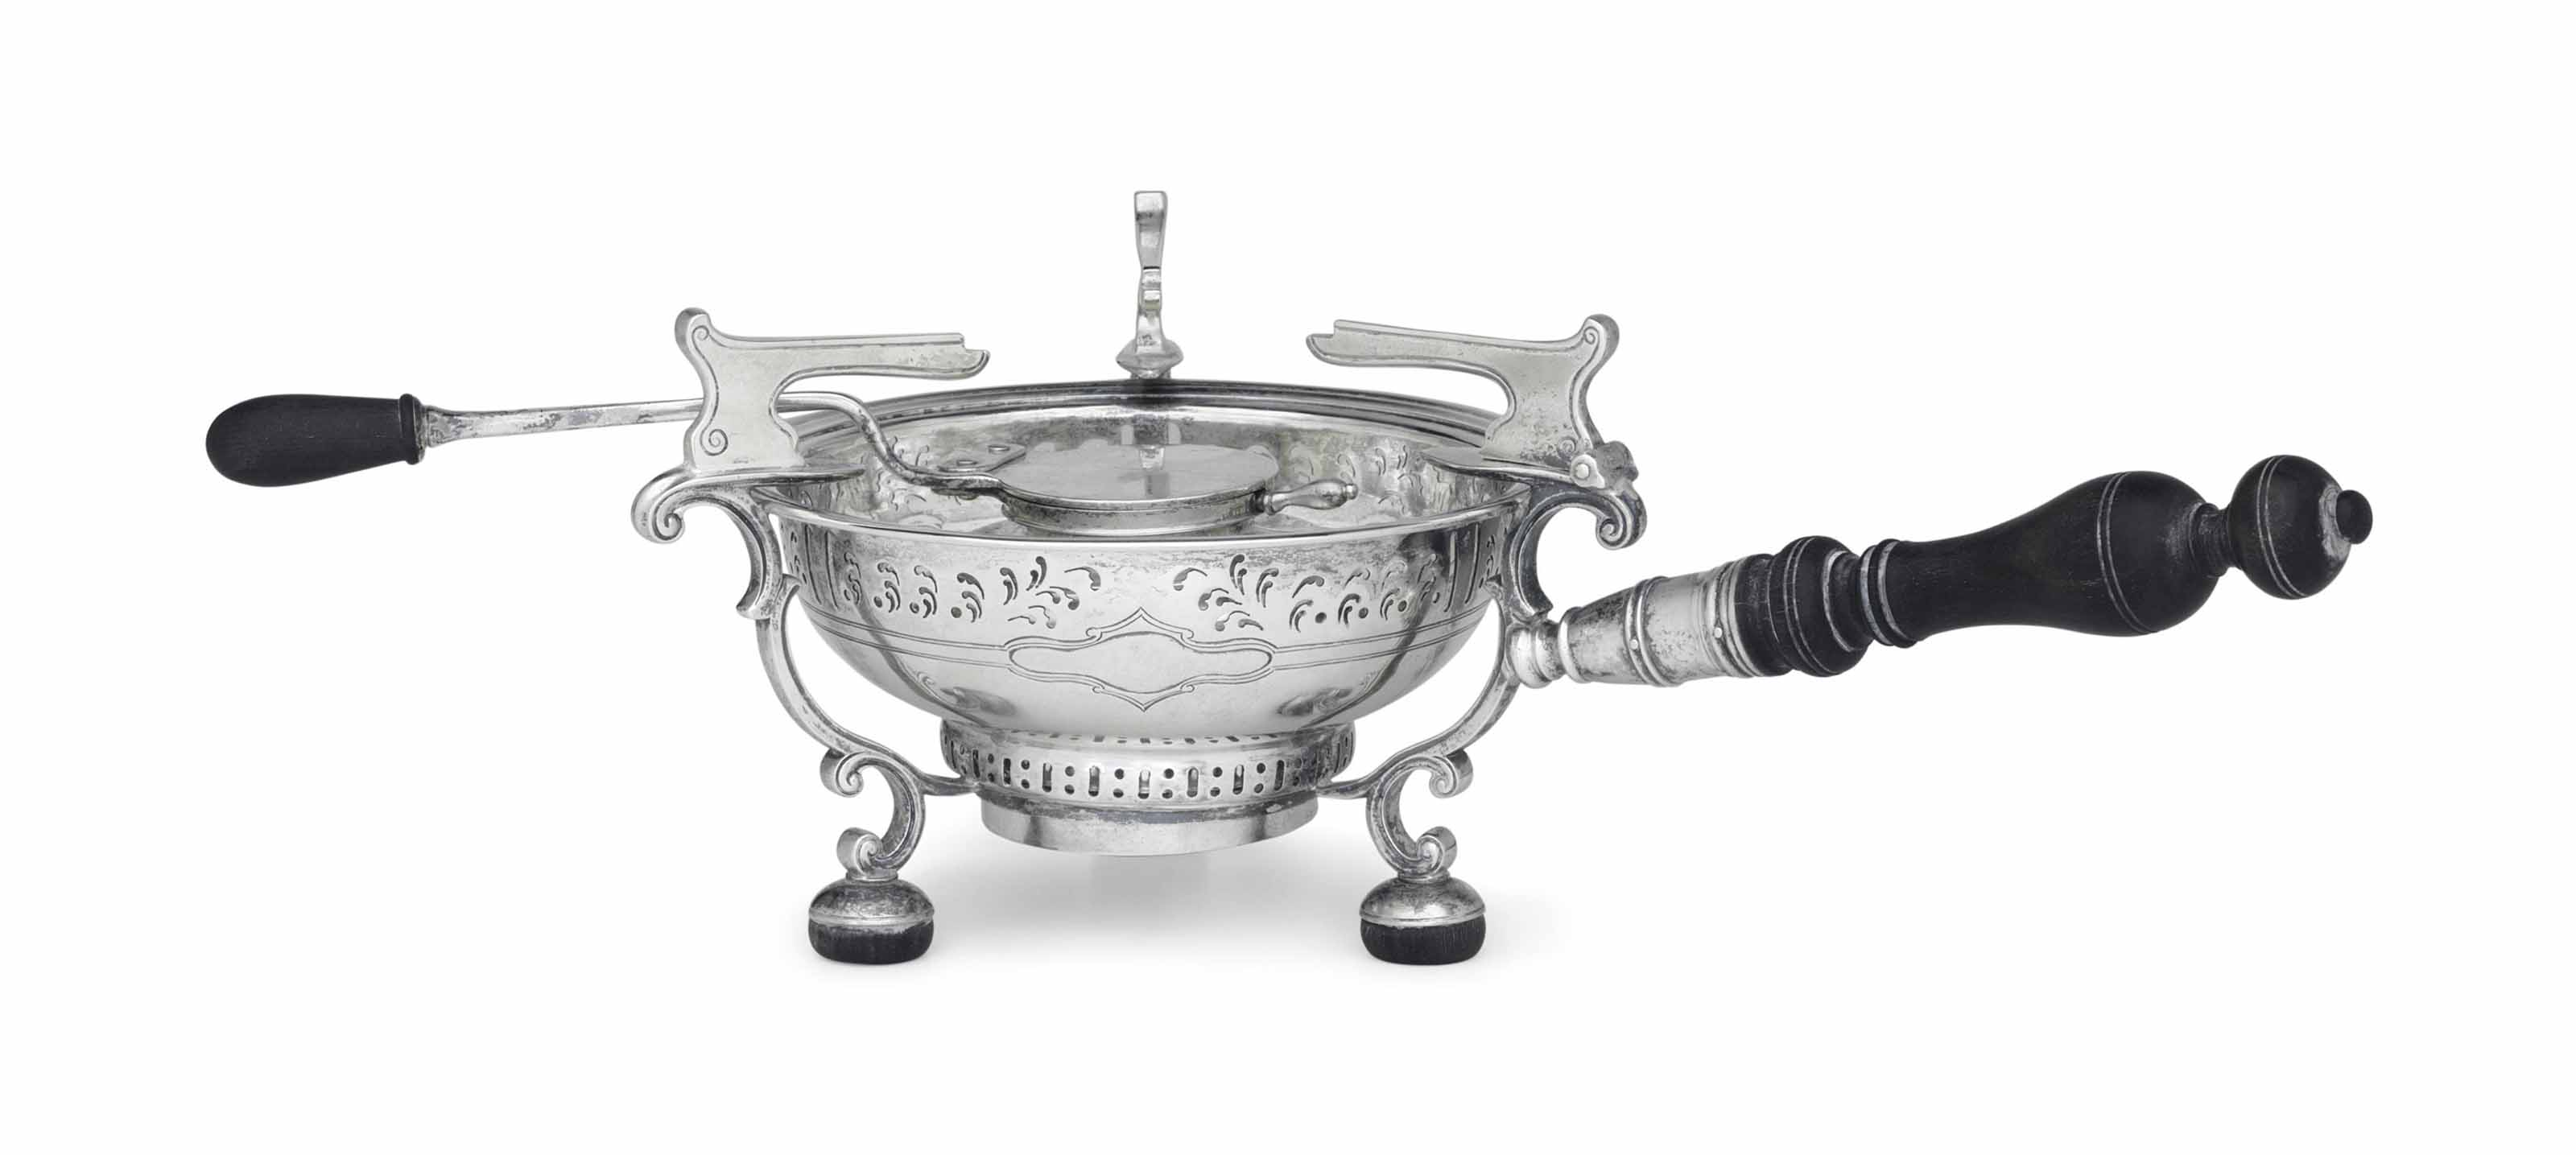 A COLONIAL REVIVAL SILVER CHAFING DISH